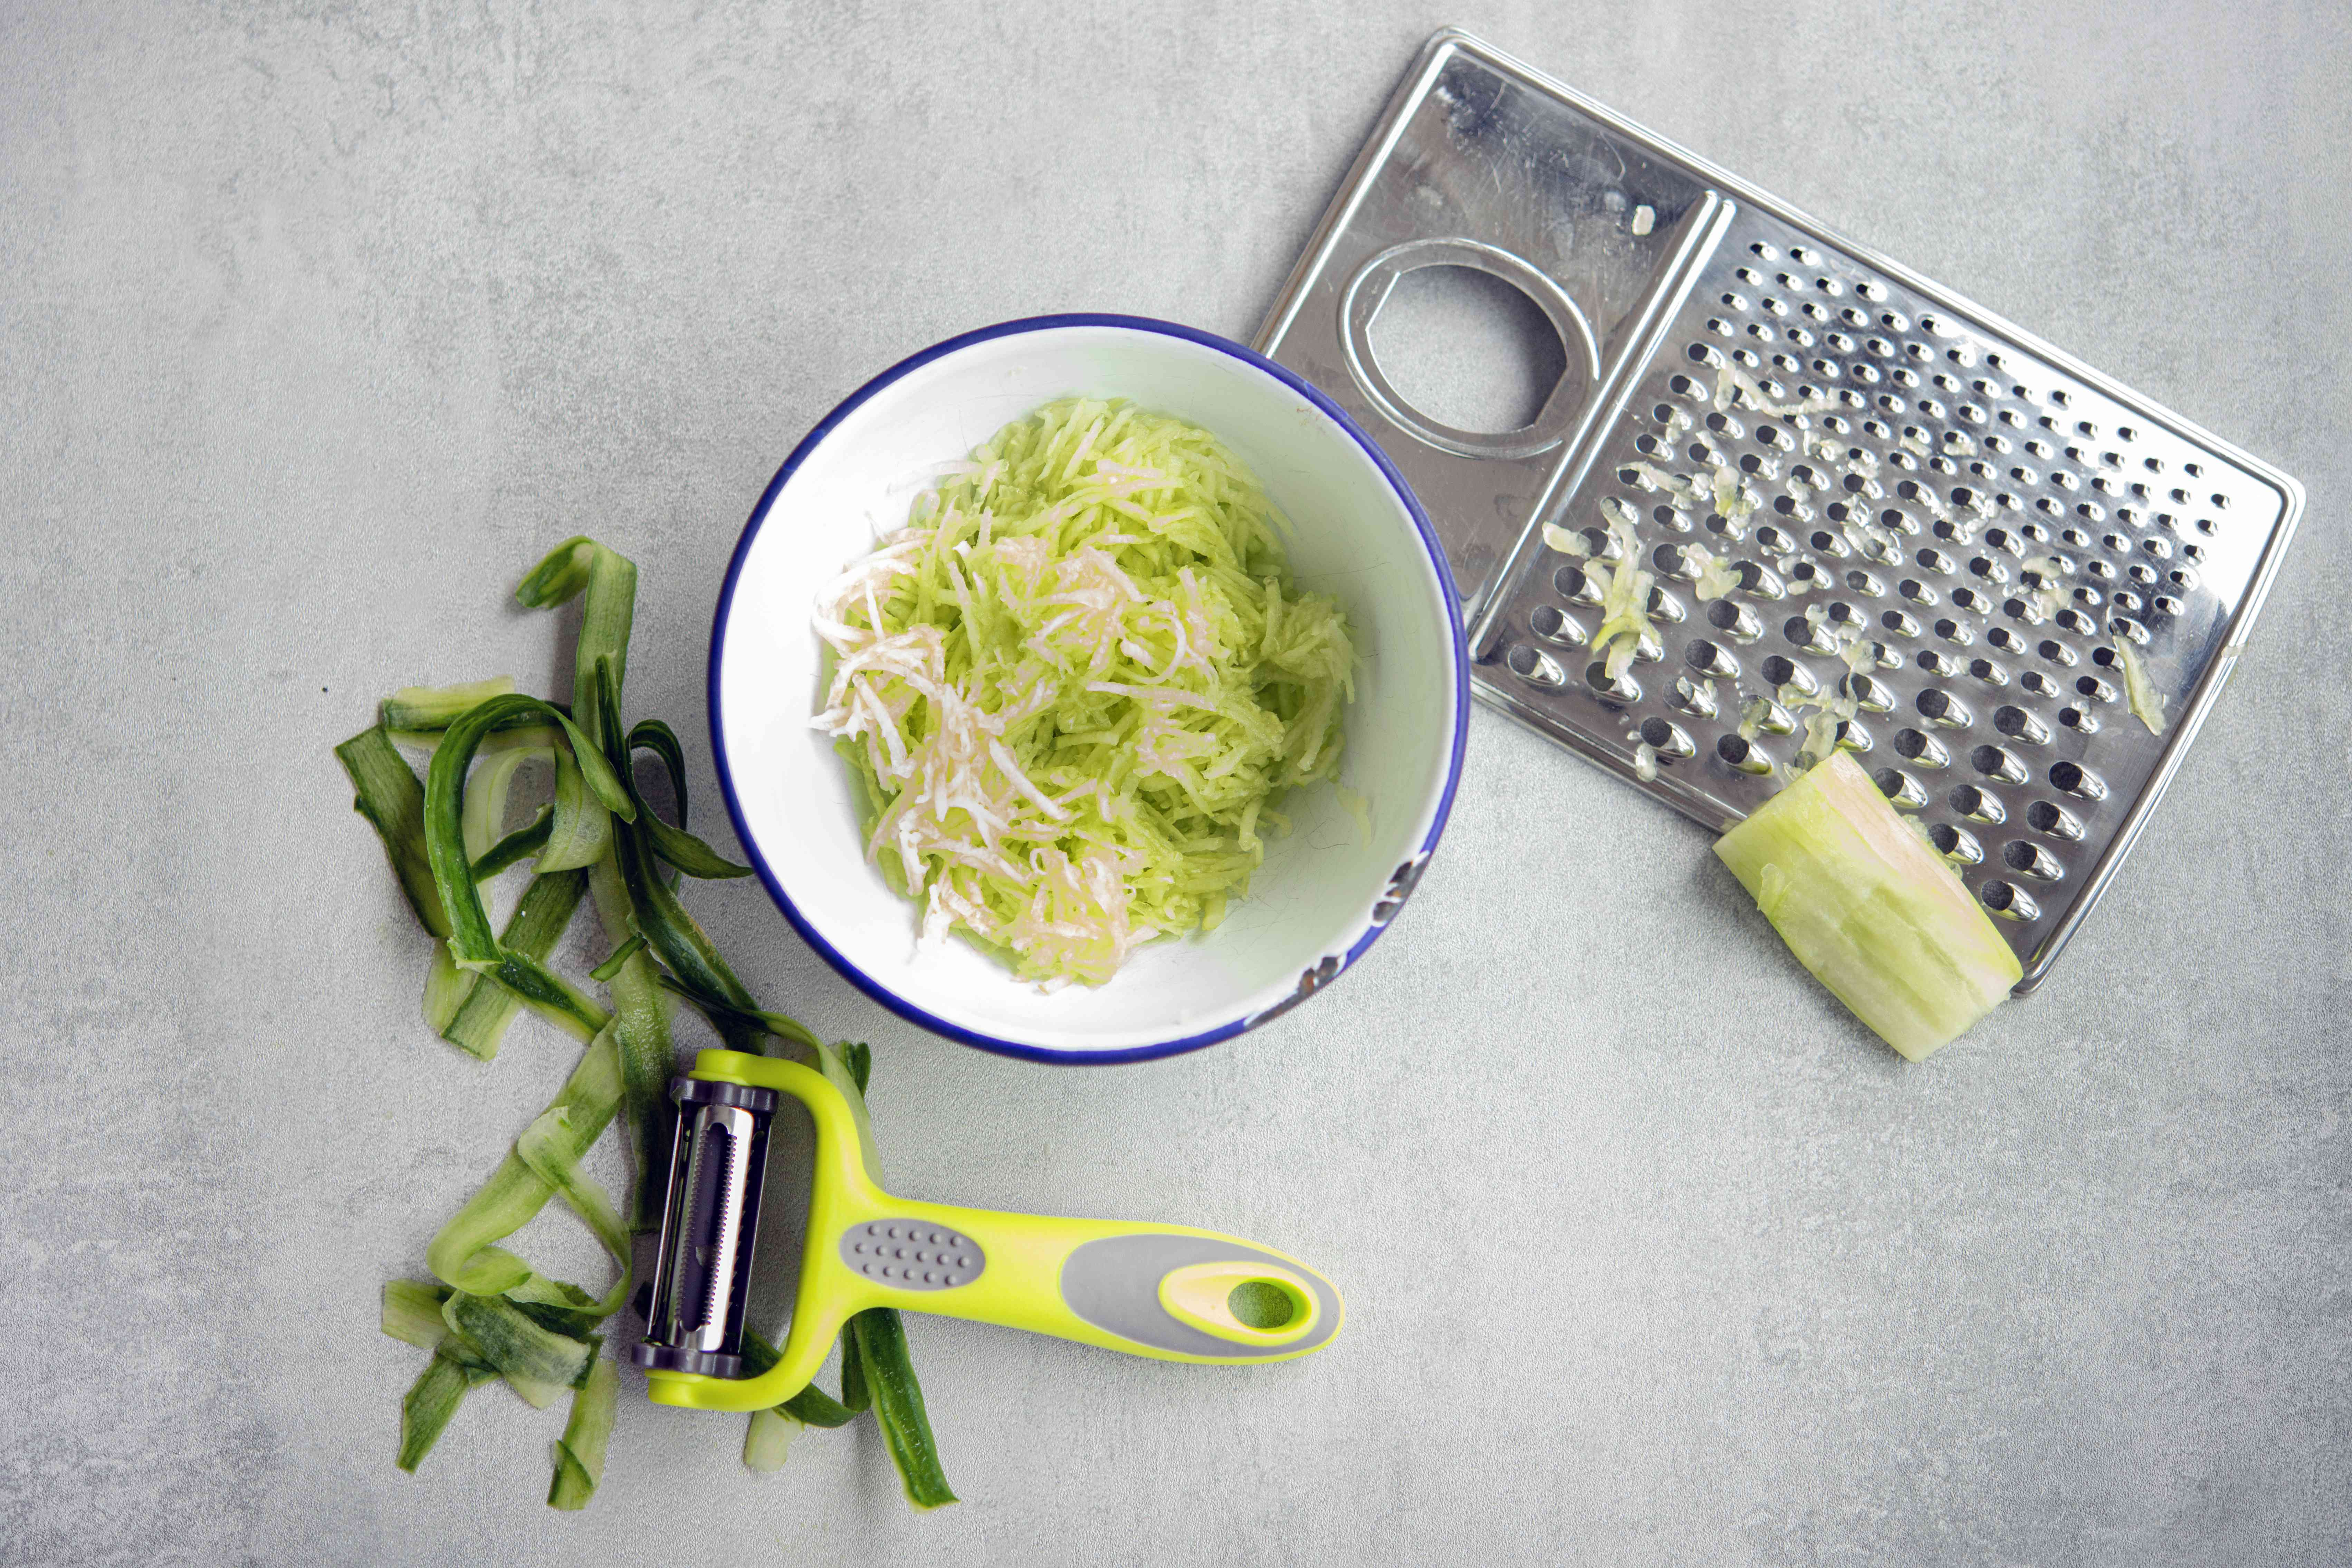 cucumber peeled and grated in a bowl